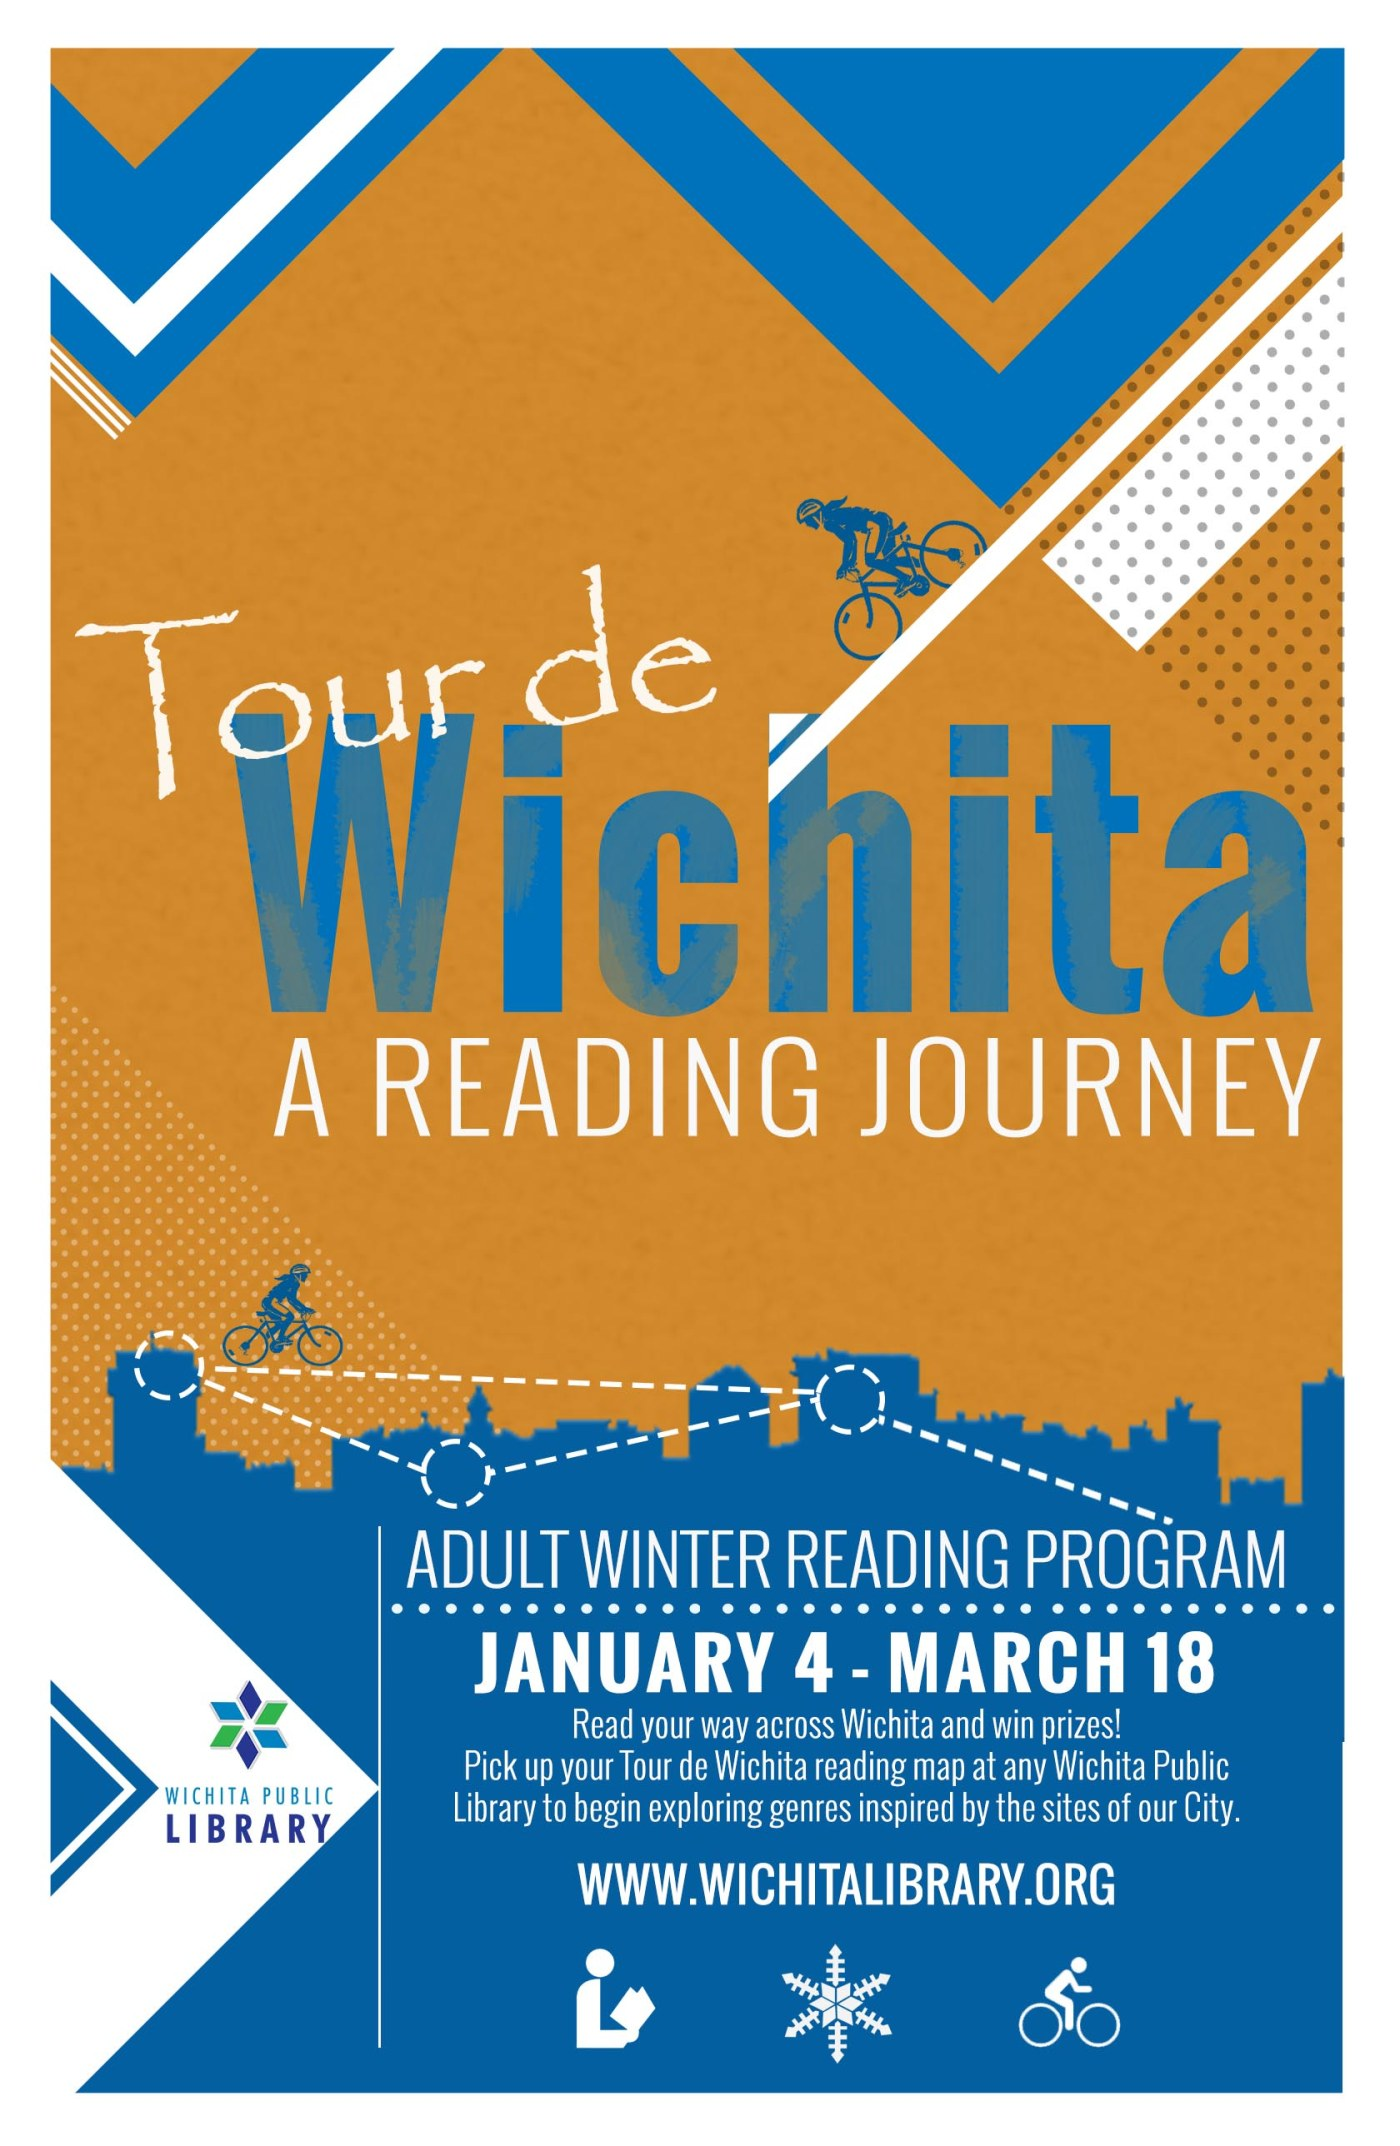 Poster design with qr code - A Reading Journey